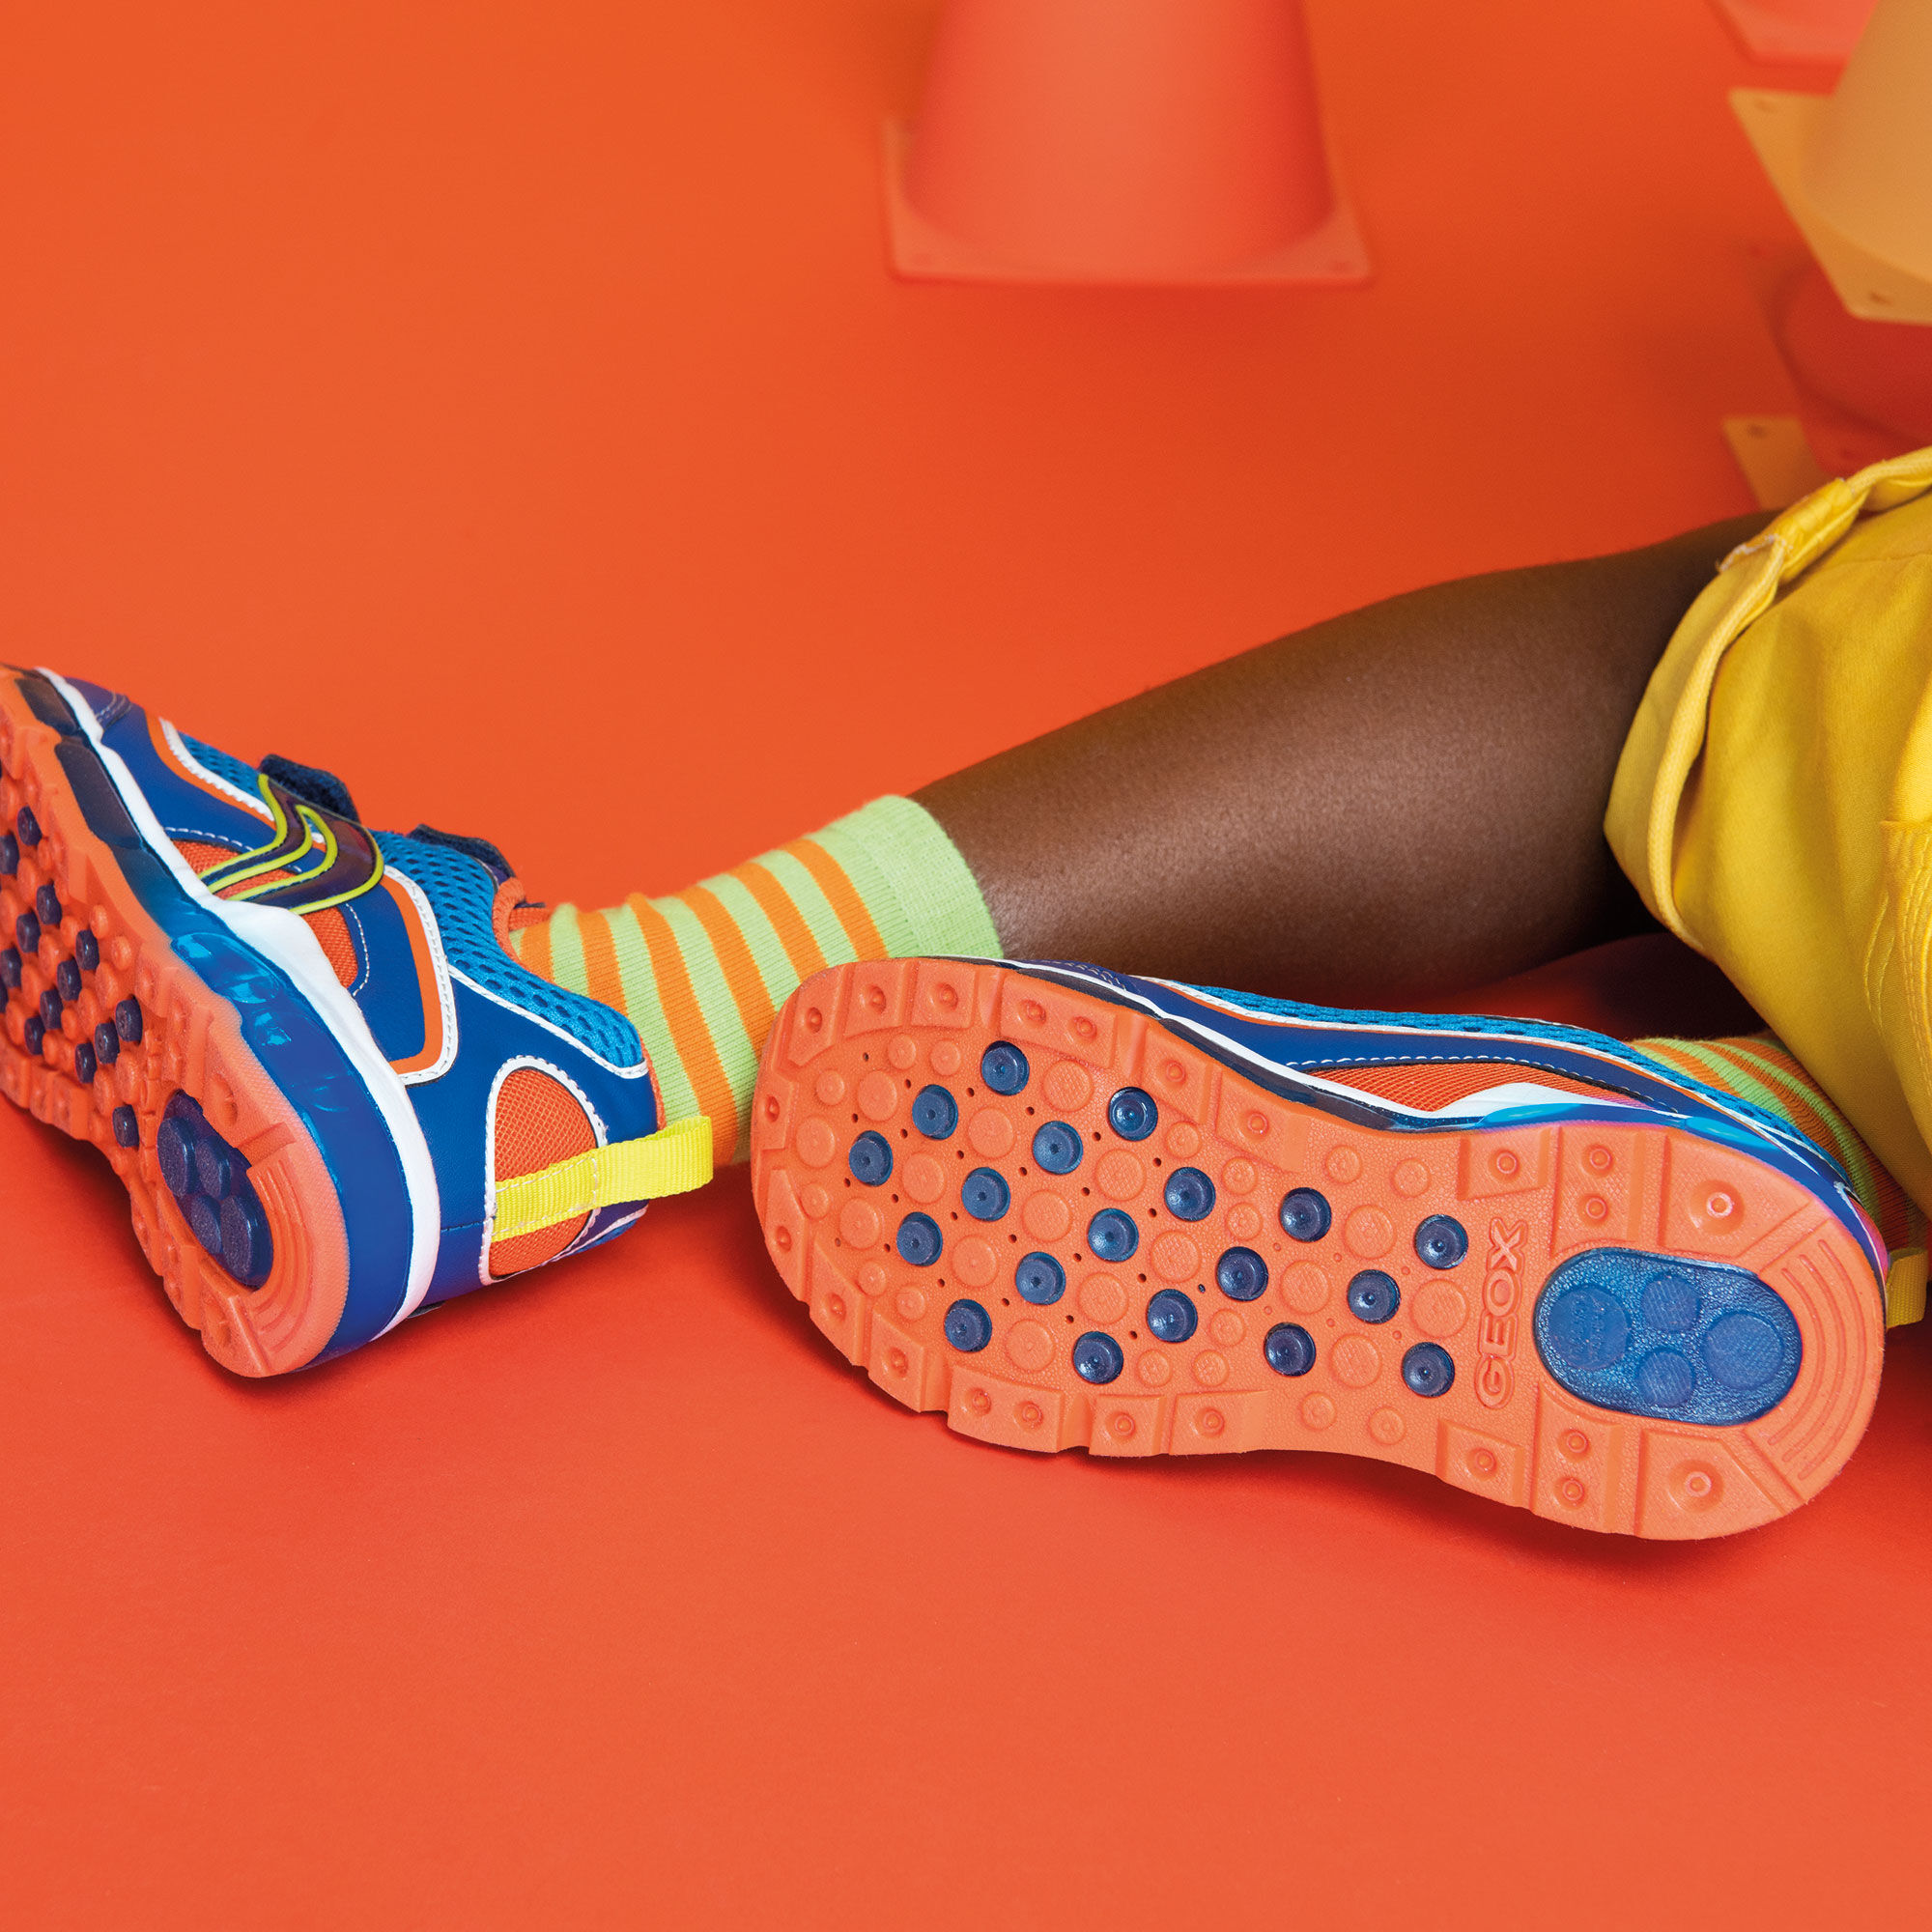 Geox ANDROID Bambino: Sneakers Blu reale | Geox SS20